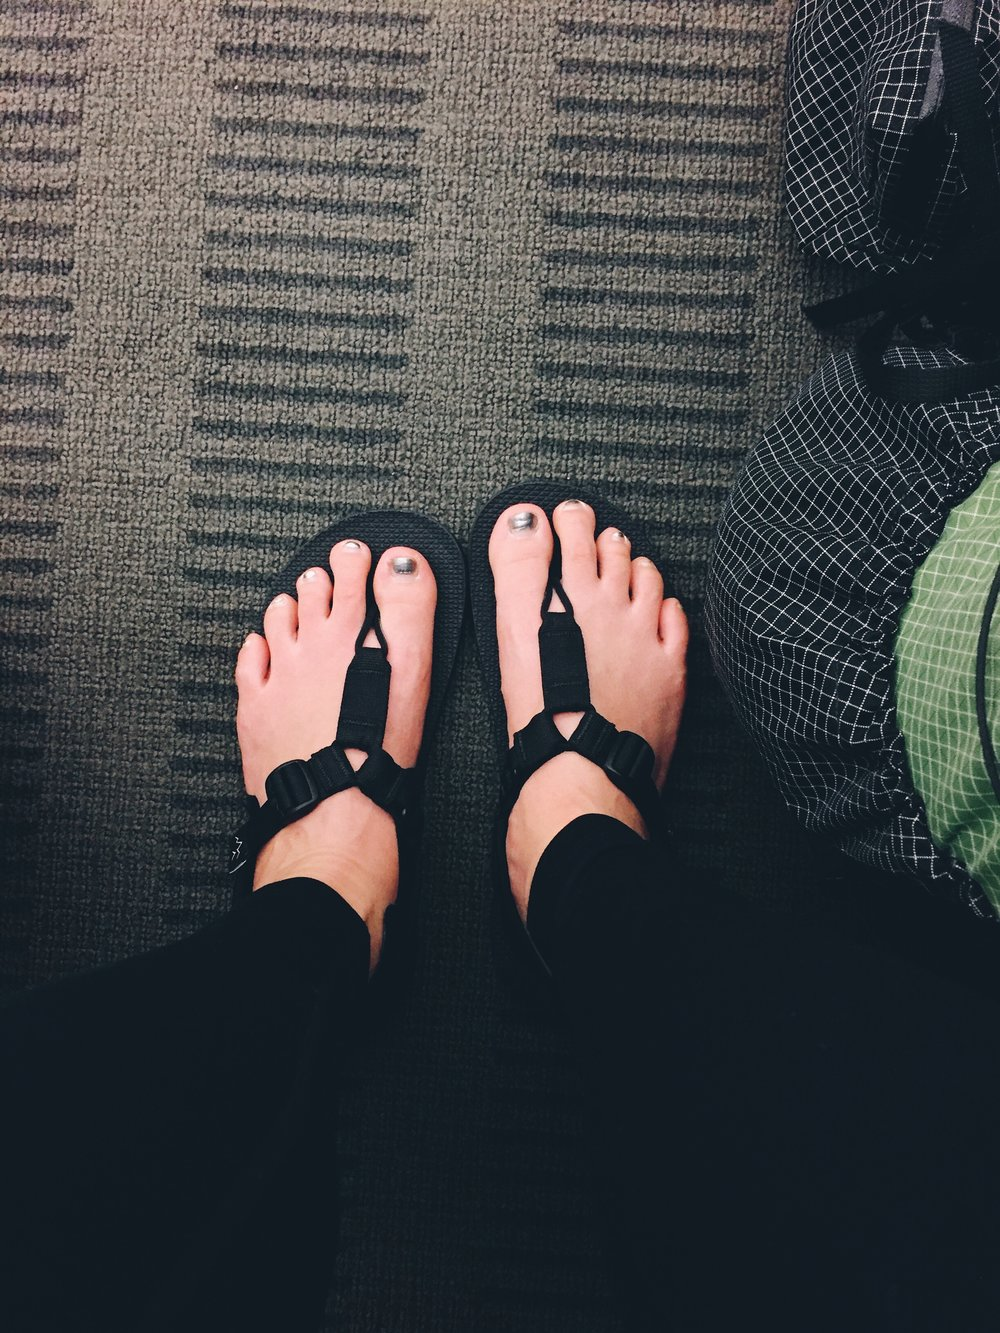 My bedrock sandals! Should've opted for a pedi too, my feet look kinda swollen from sitting the whole time.